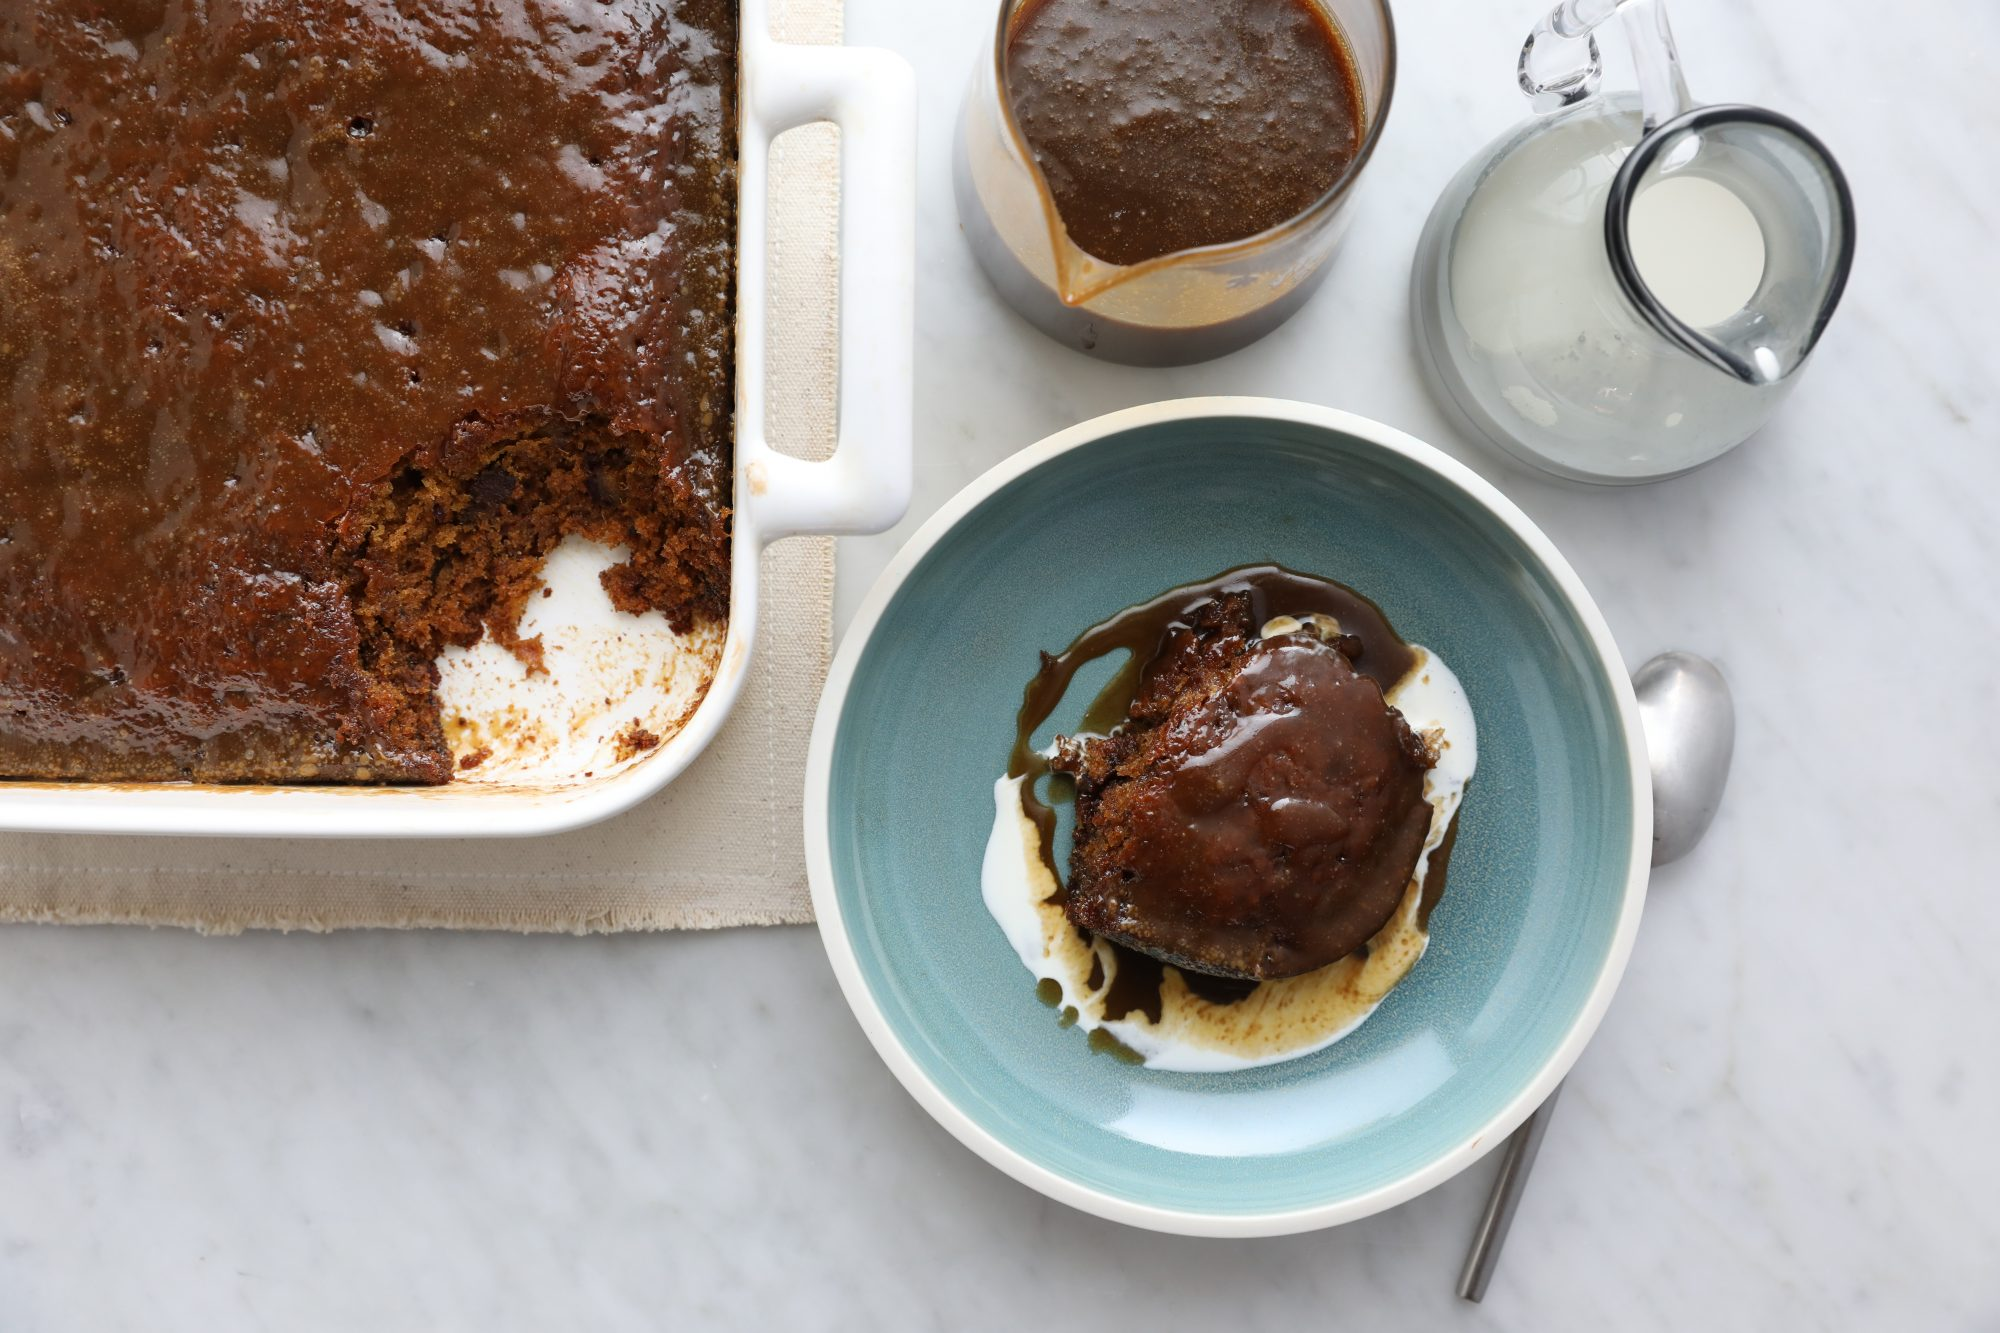 Sticky Toffee Pudding by Nigella Lawson